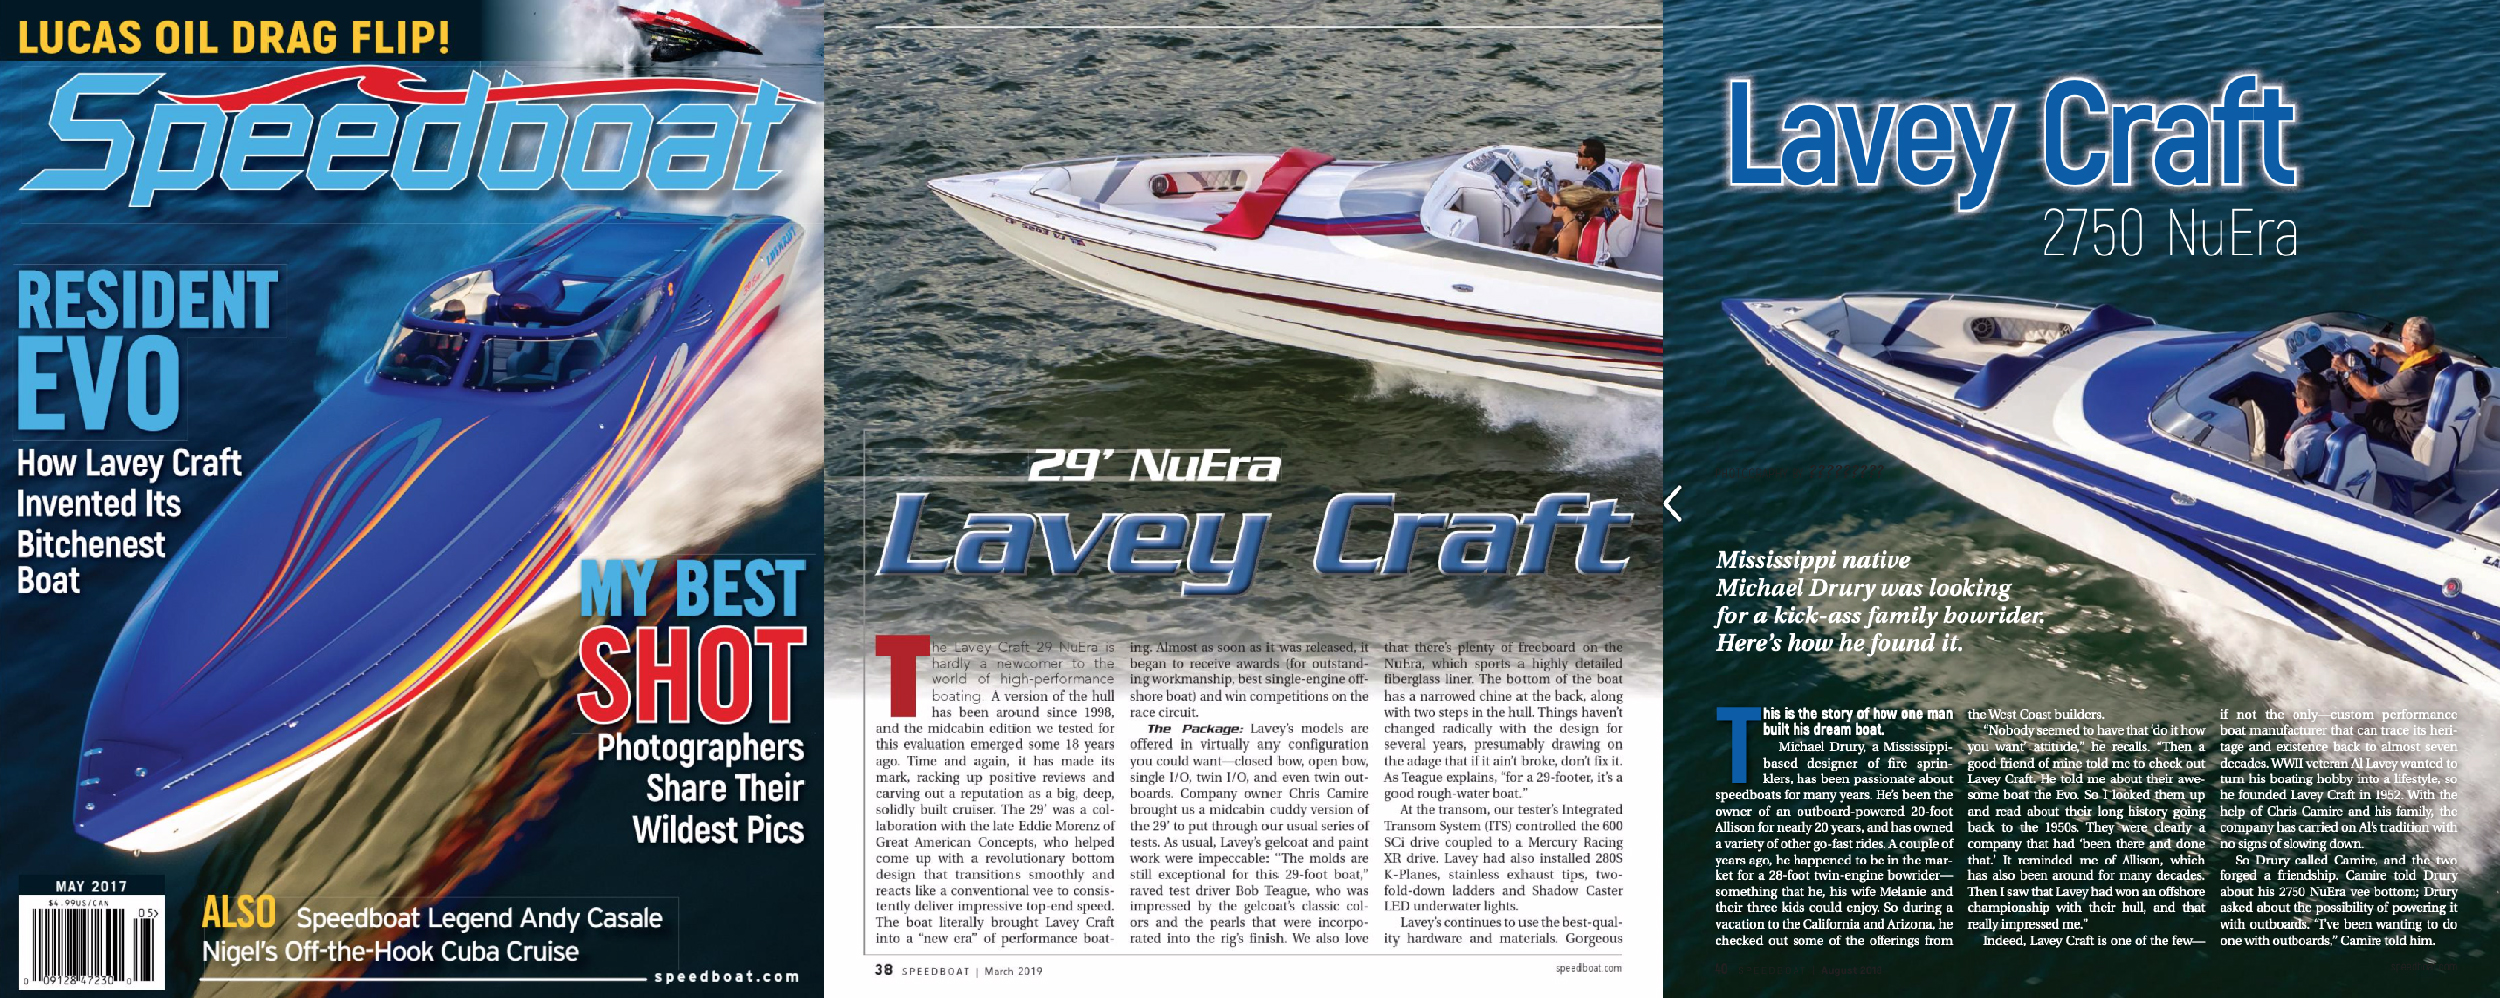 Lavey Craft magazines header collage.jpg